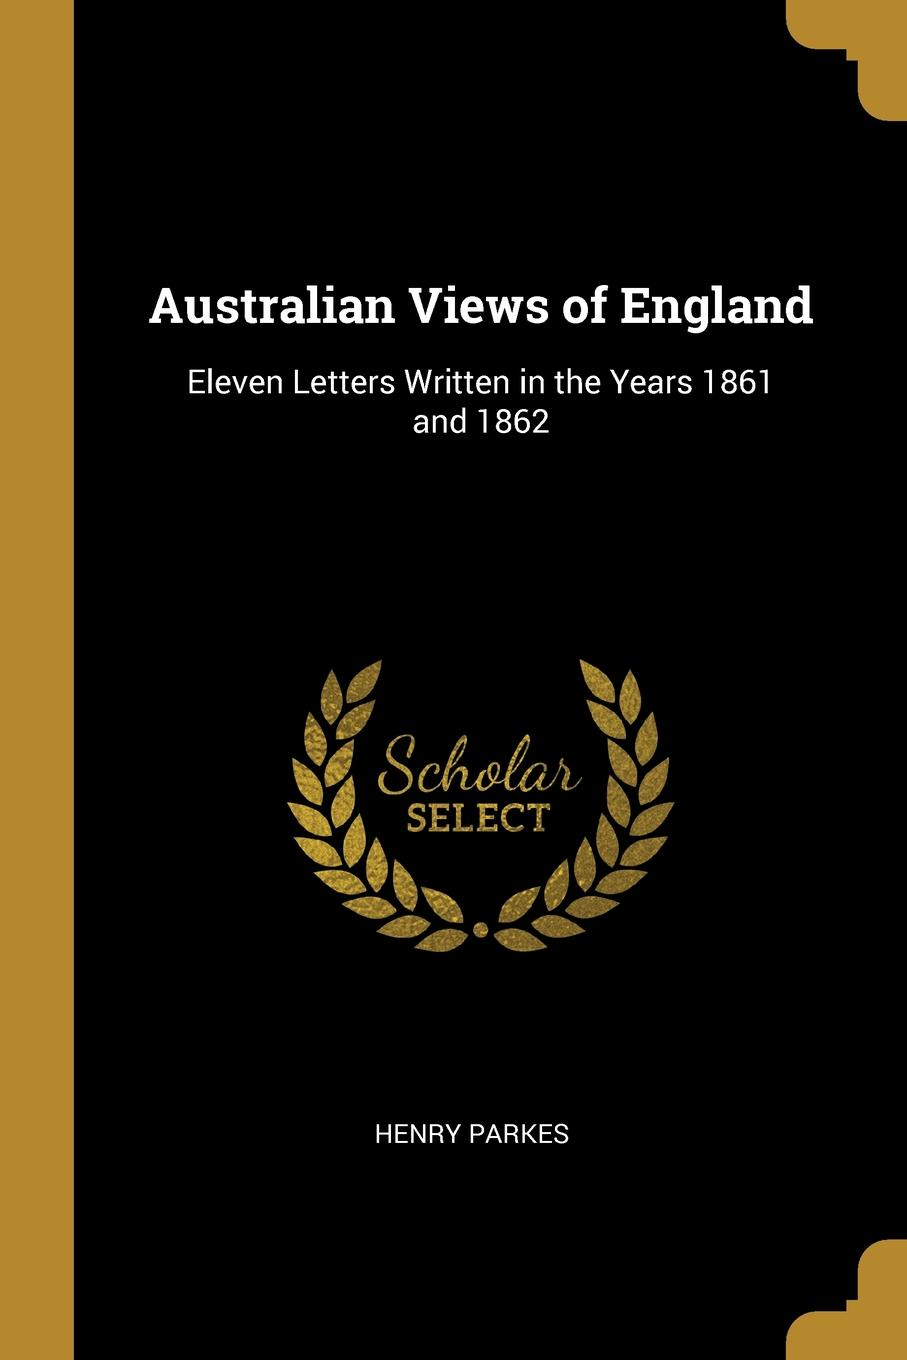 Henry Parkes. Australian Views of England. Eleven Letters Written in the Years 1861 and 1862